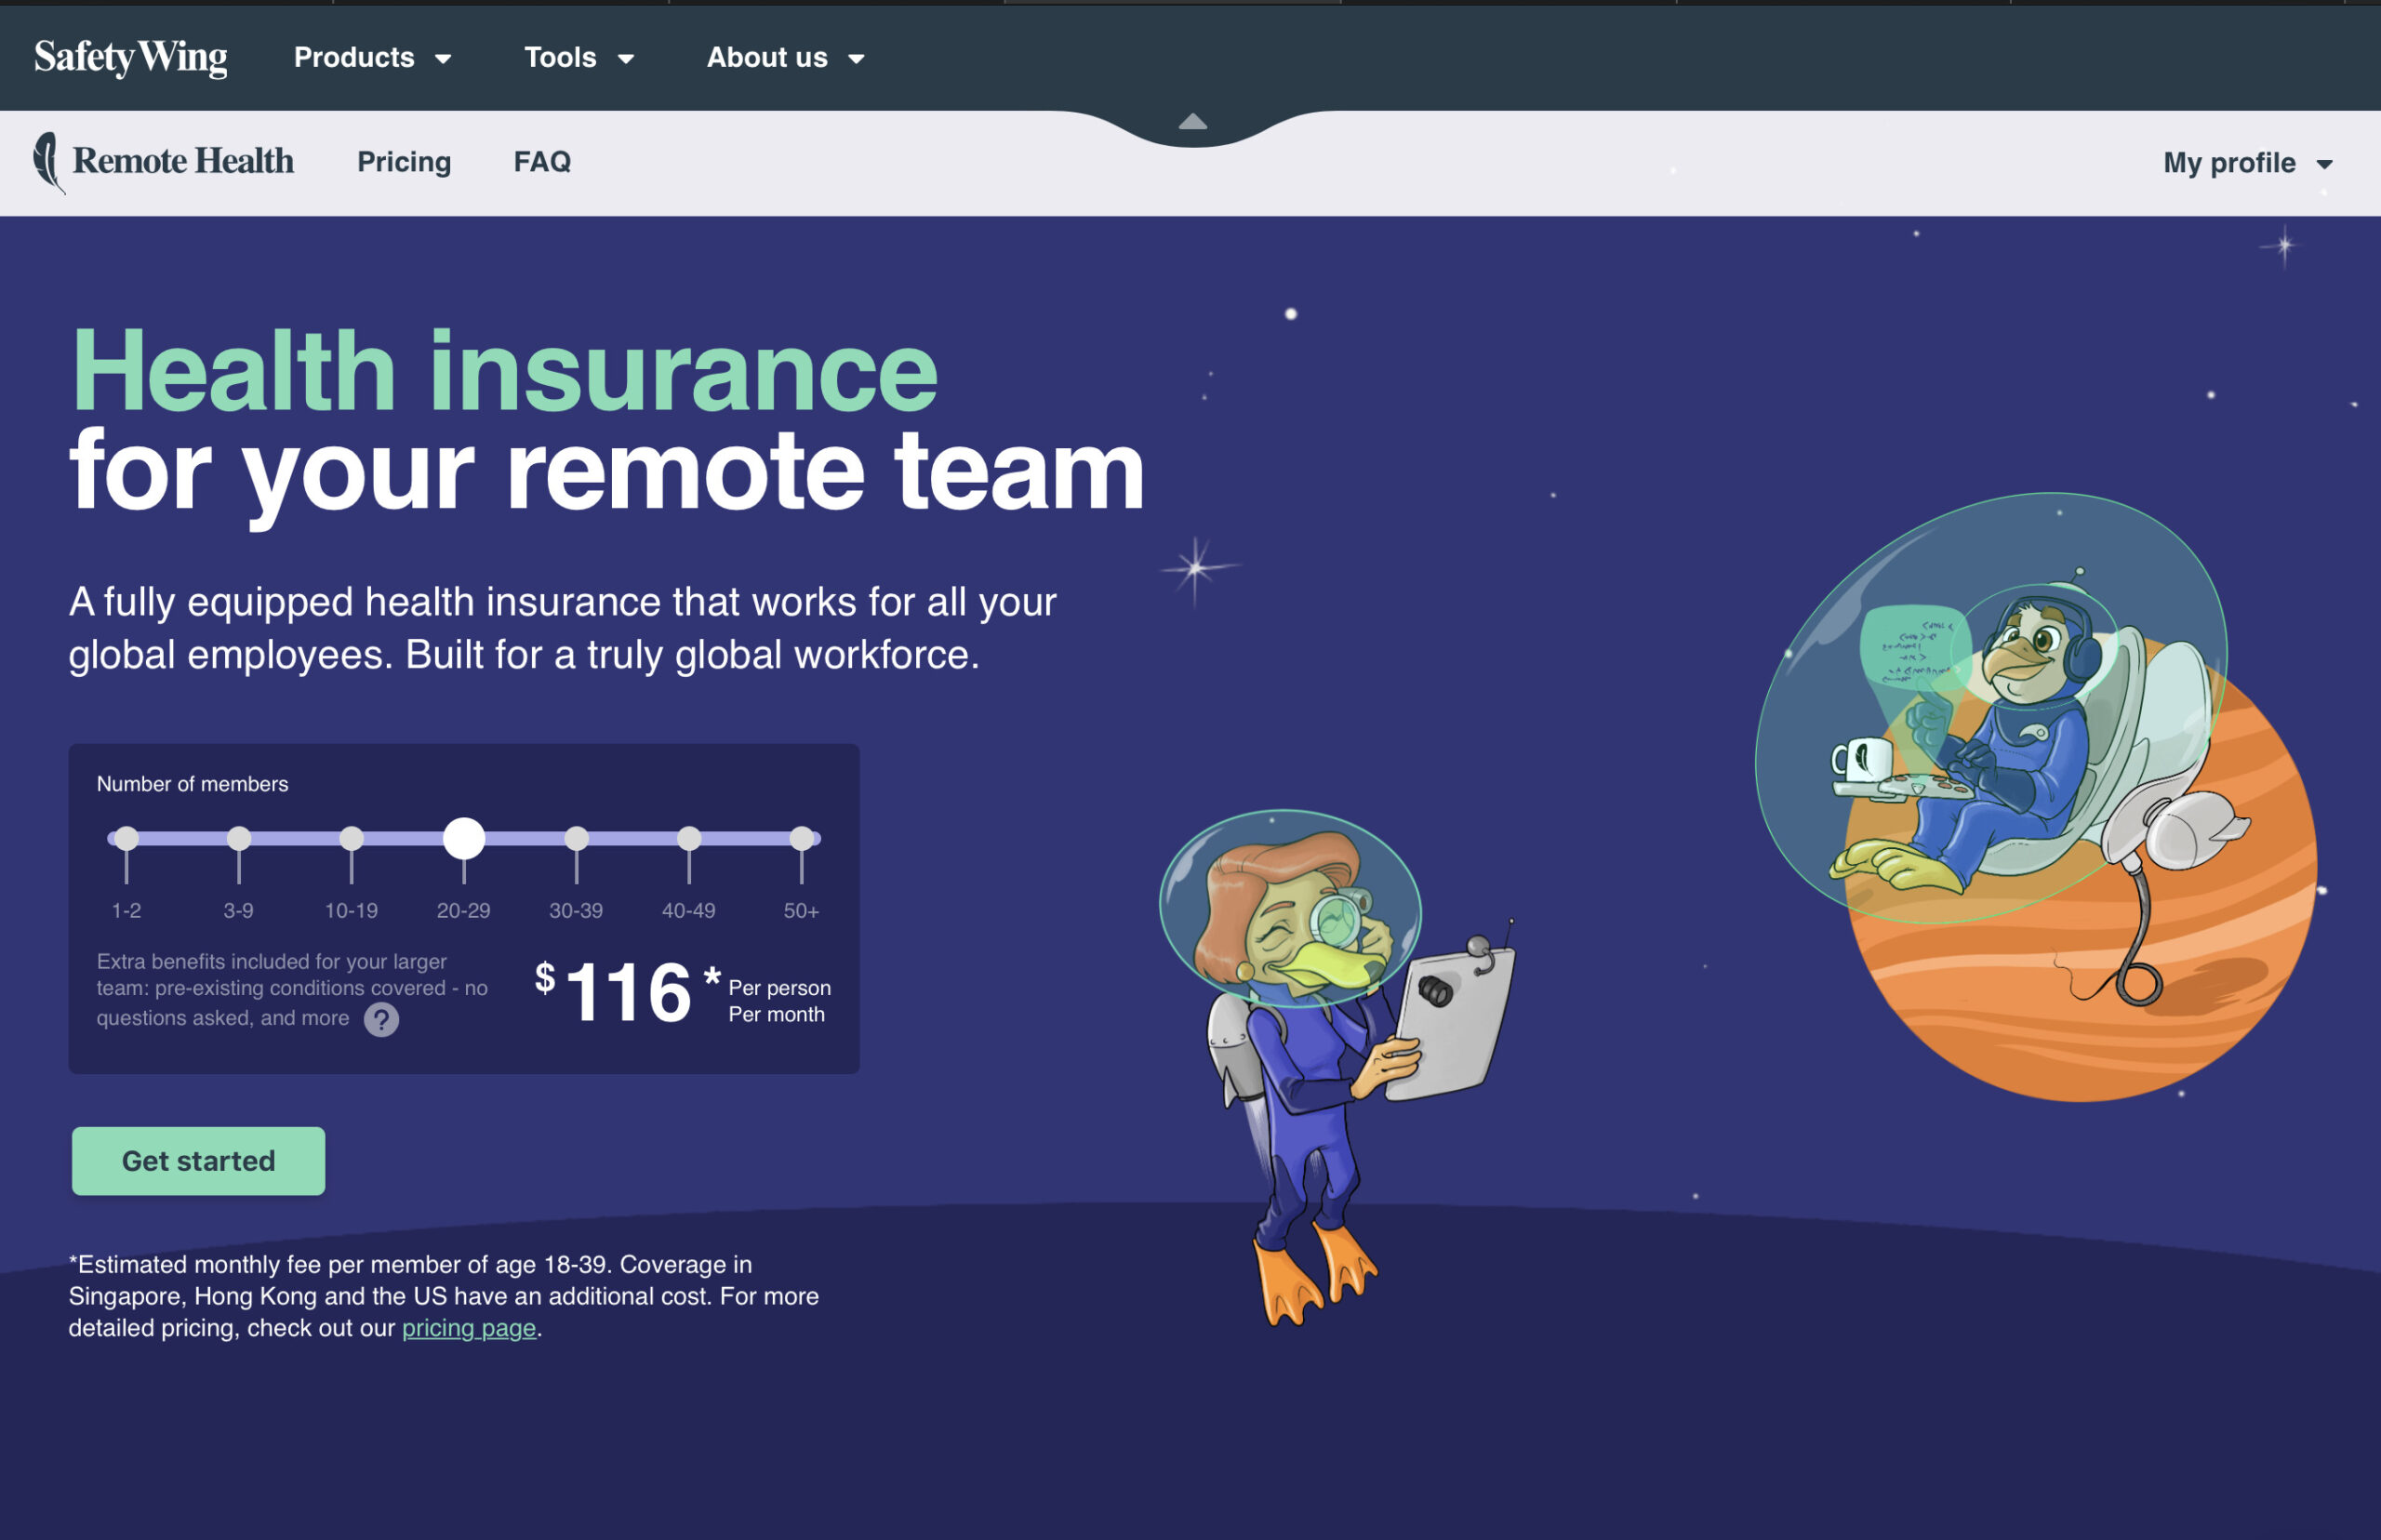 SafetyWing Remote Health Review